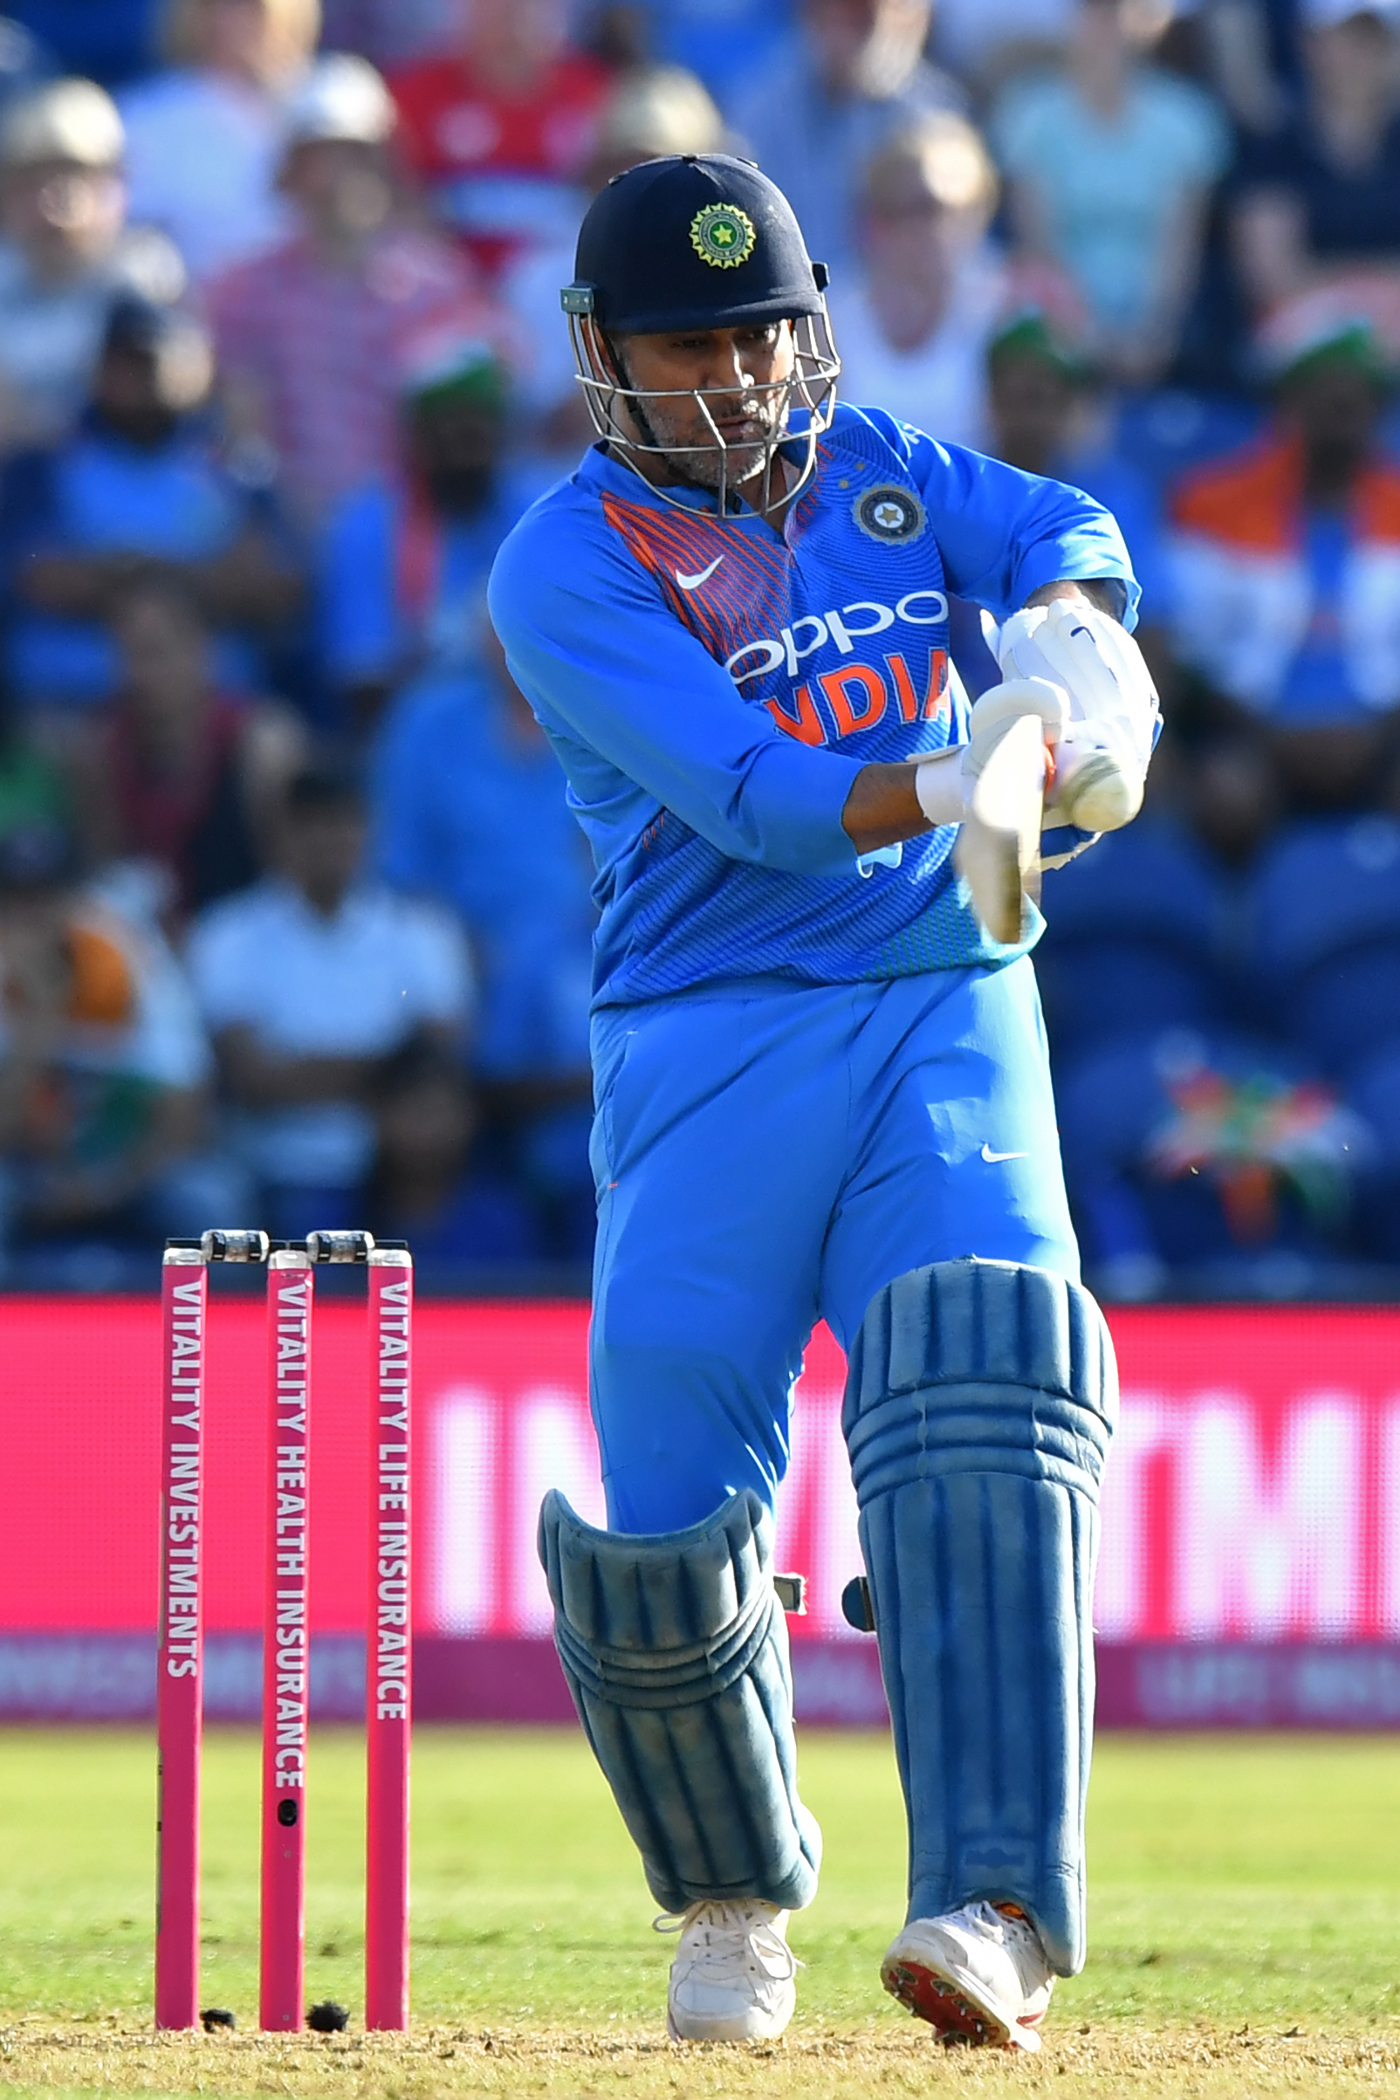 IND vs ENG 2018: The Fans Did Not Get Their Money's Worth From MS Dhoni: Nasser Hussain